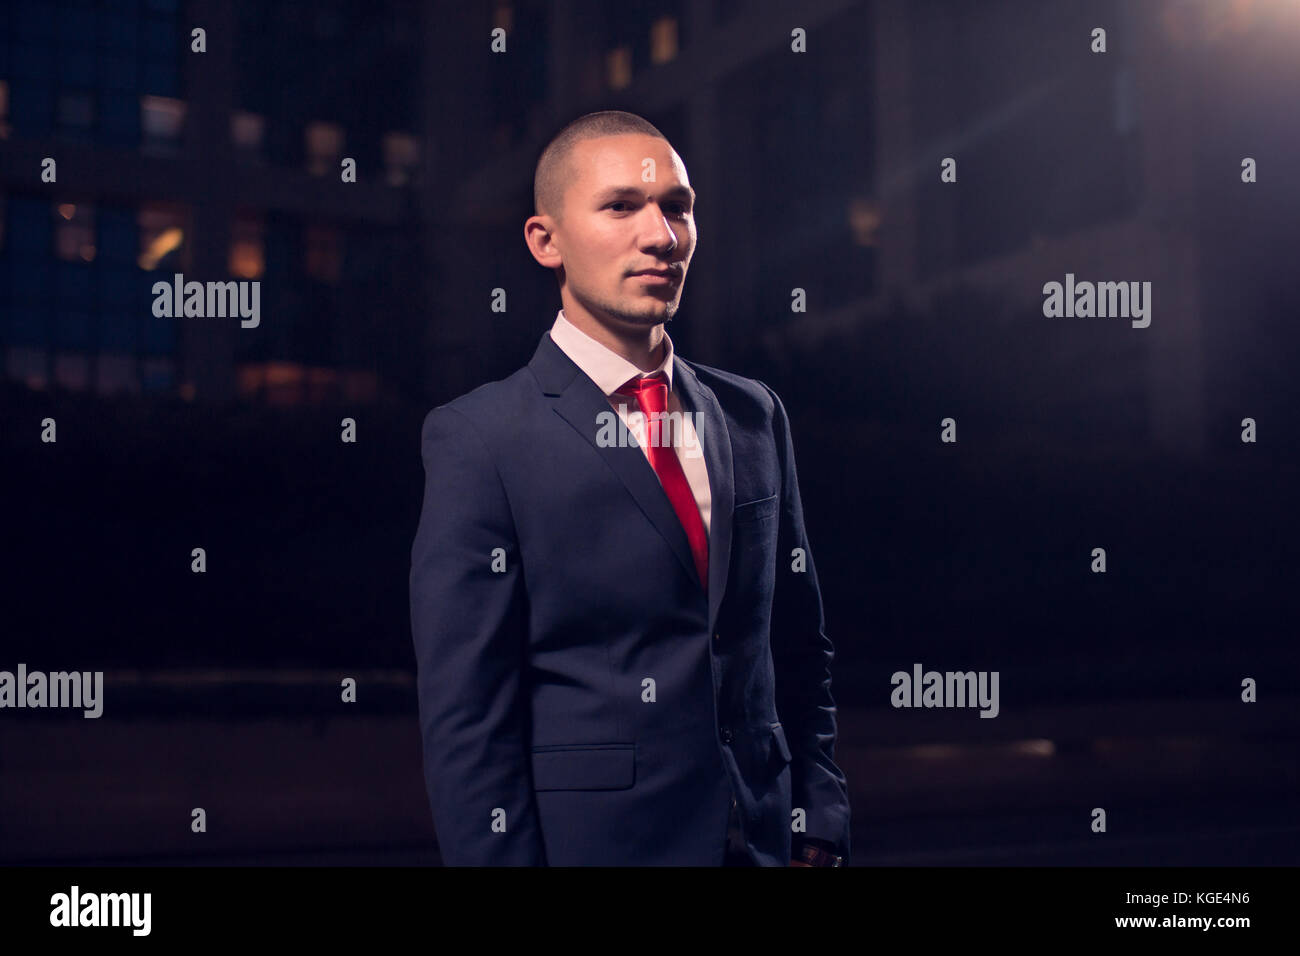 One young adult man, businessman, suit, formal wear, outdoors, night evening dark portrait modern building exterior - Stock Image